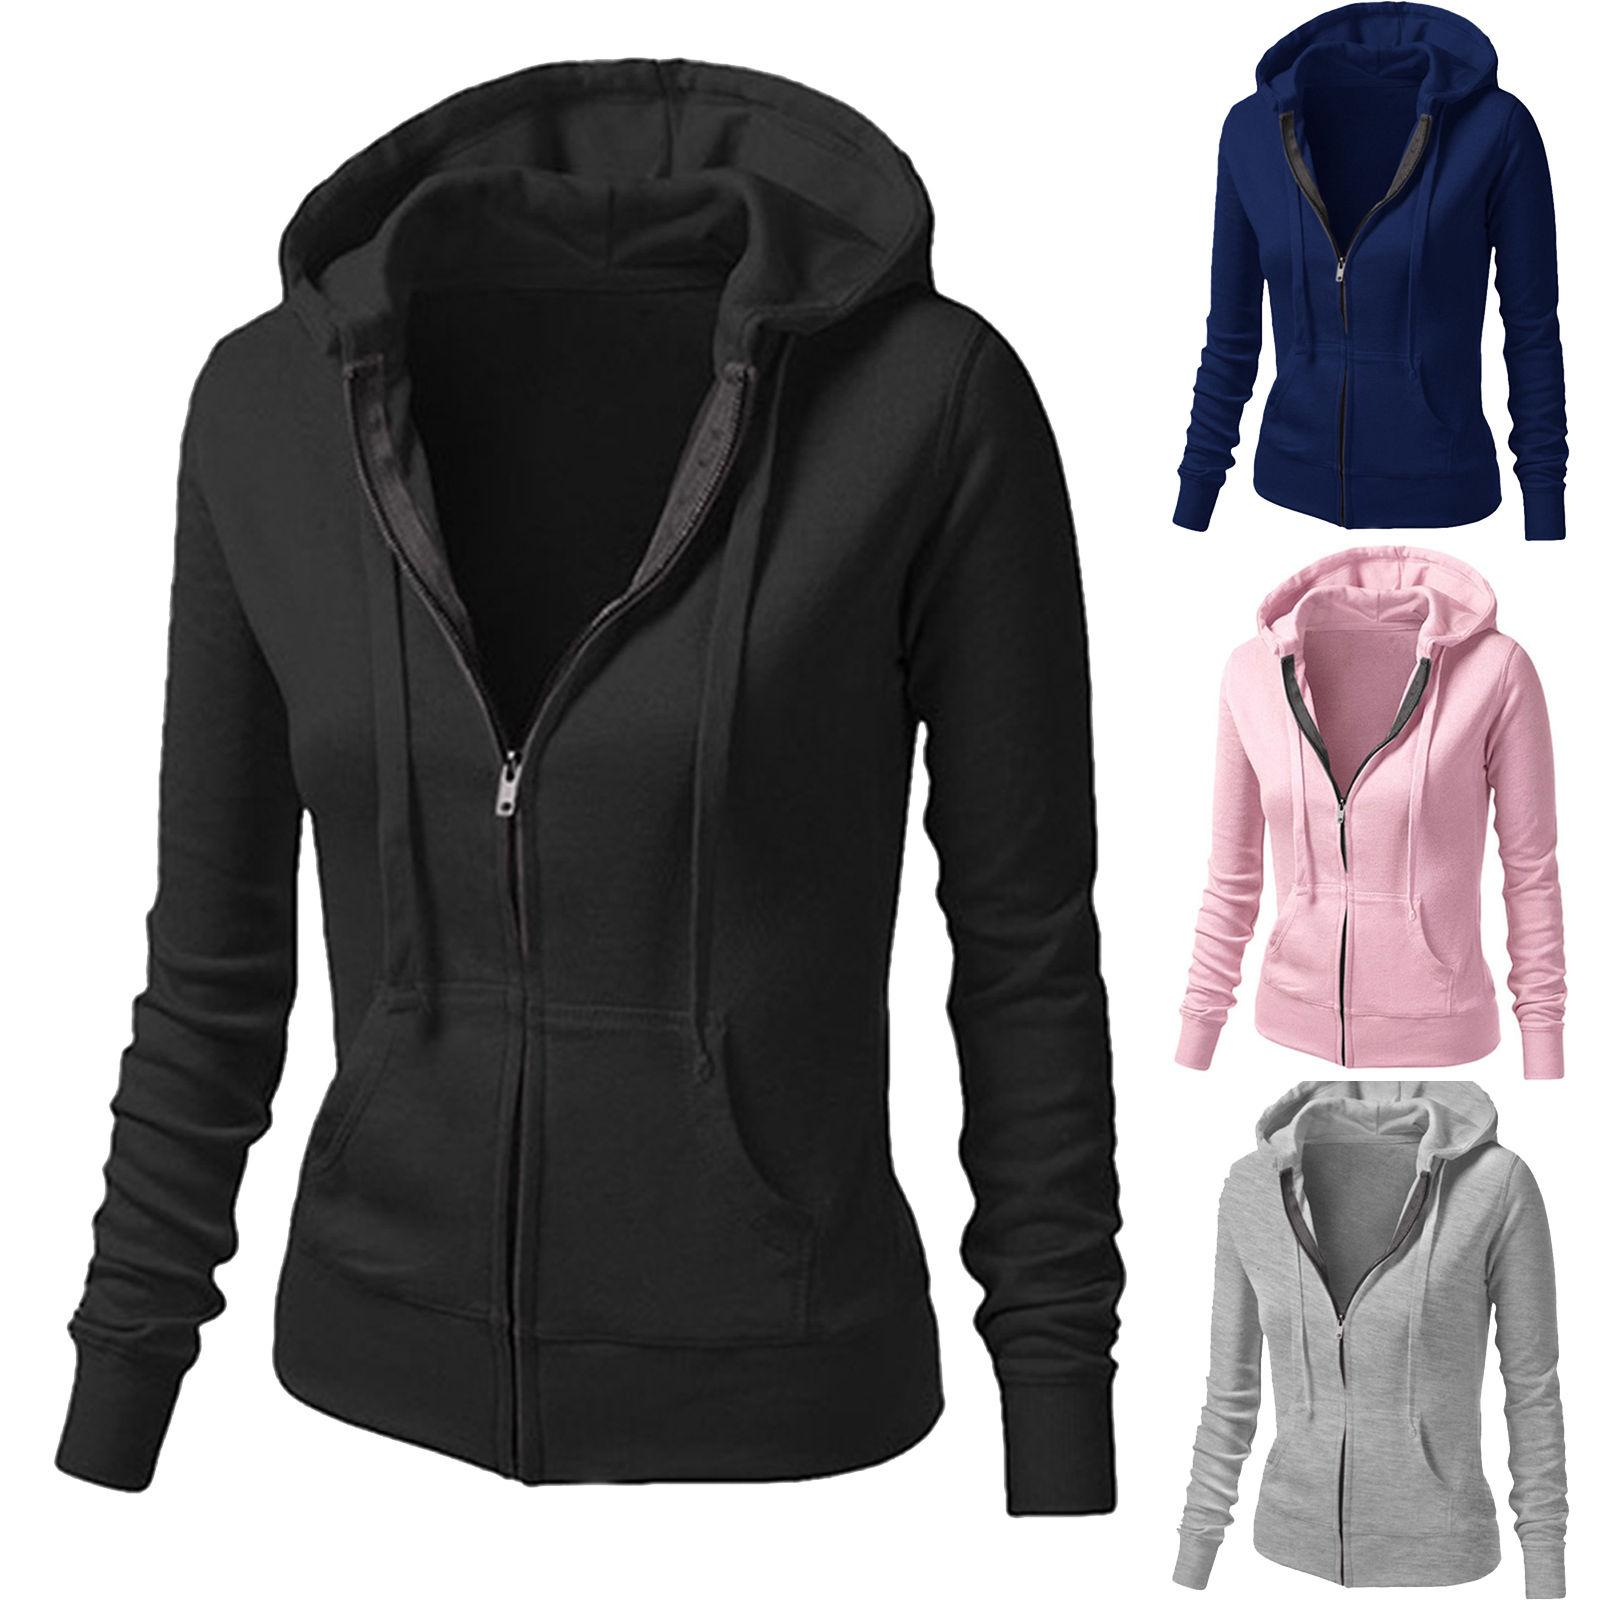 Womens Ladies Plain Girls Pocket Hoody Zip Up Tops Girls ...